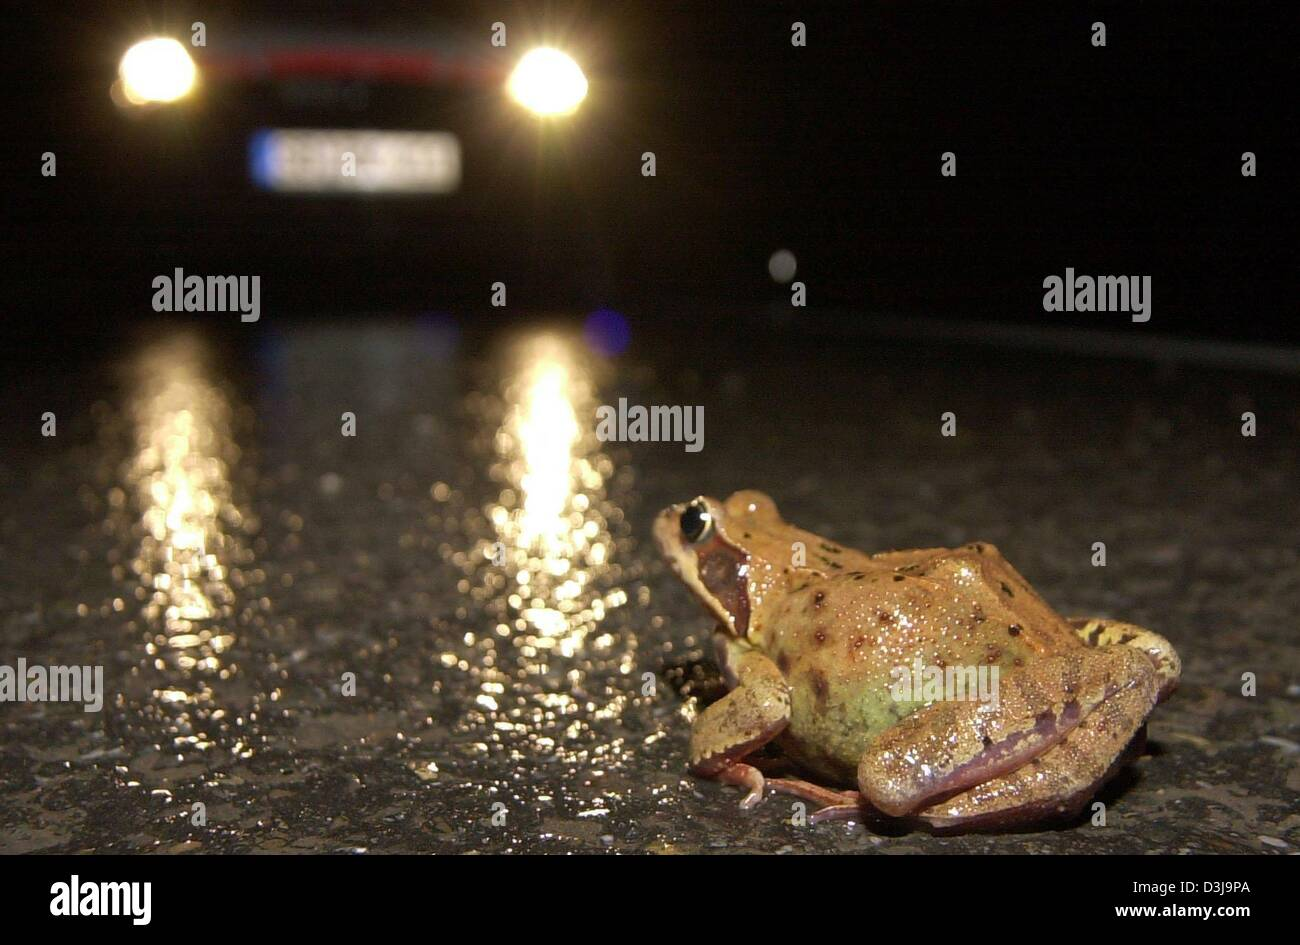 (dpa) - Unequal enemies - The first mild and wet days of spring bring out all kinds of amphibians that cross streets - Stock Image